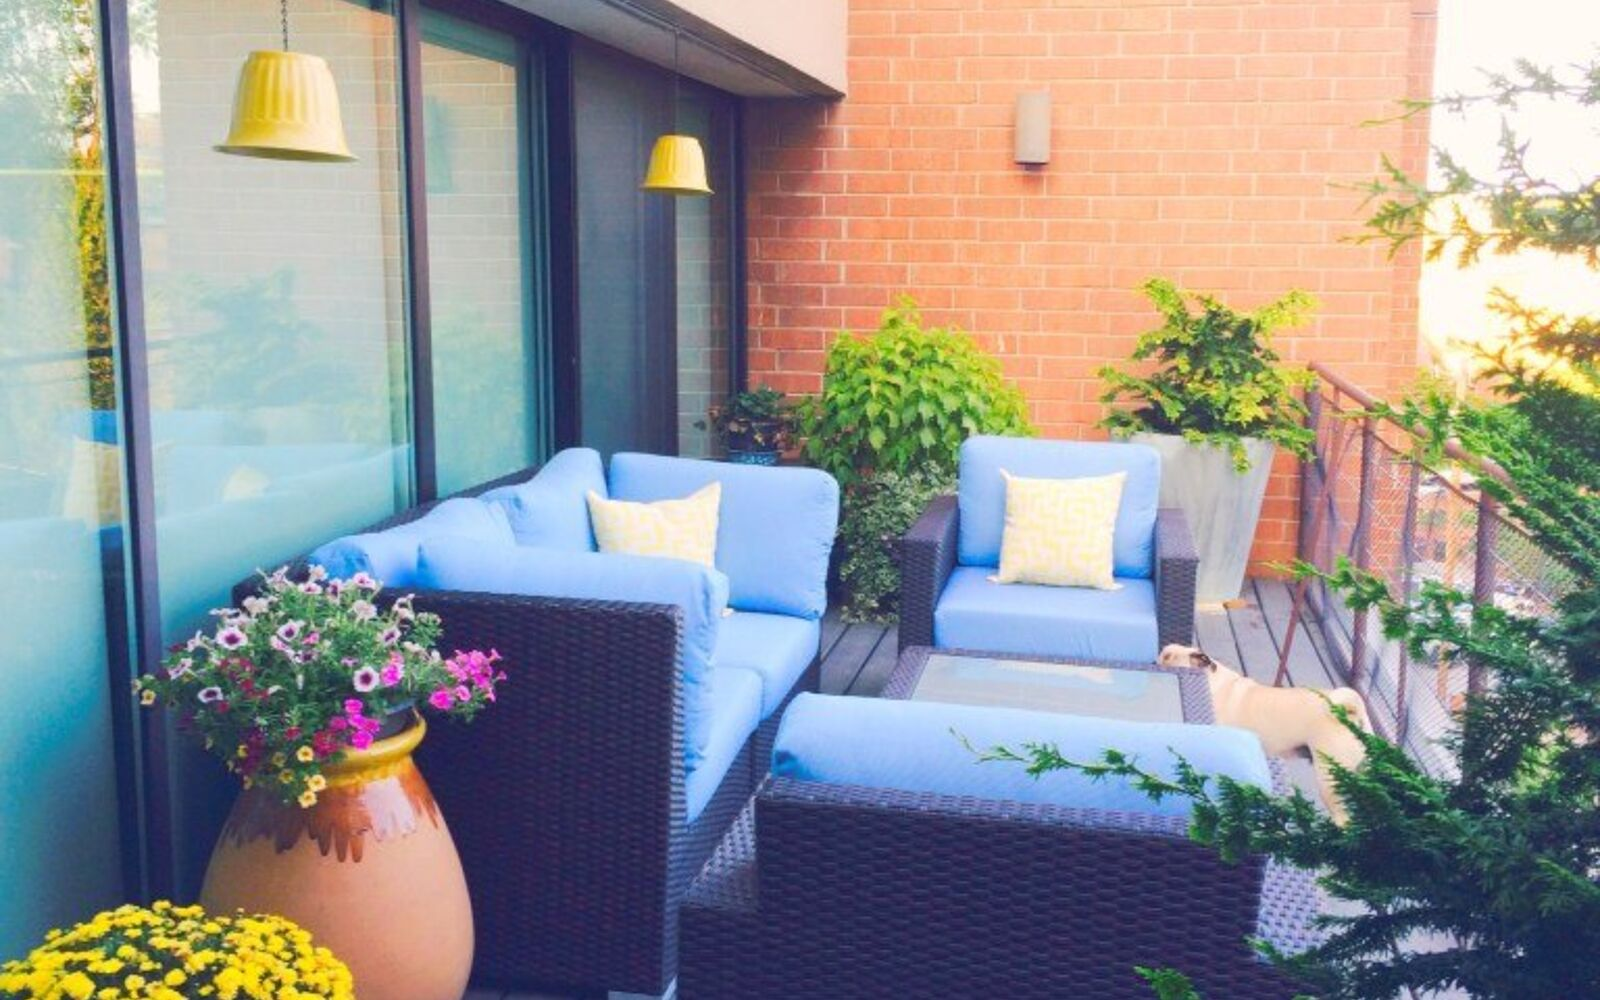 s 15 decorative ways your family can pretty up your patio, Hang Plastic Planter Pots For Light Shades